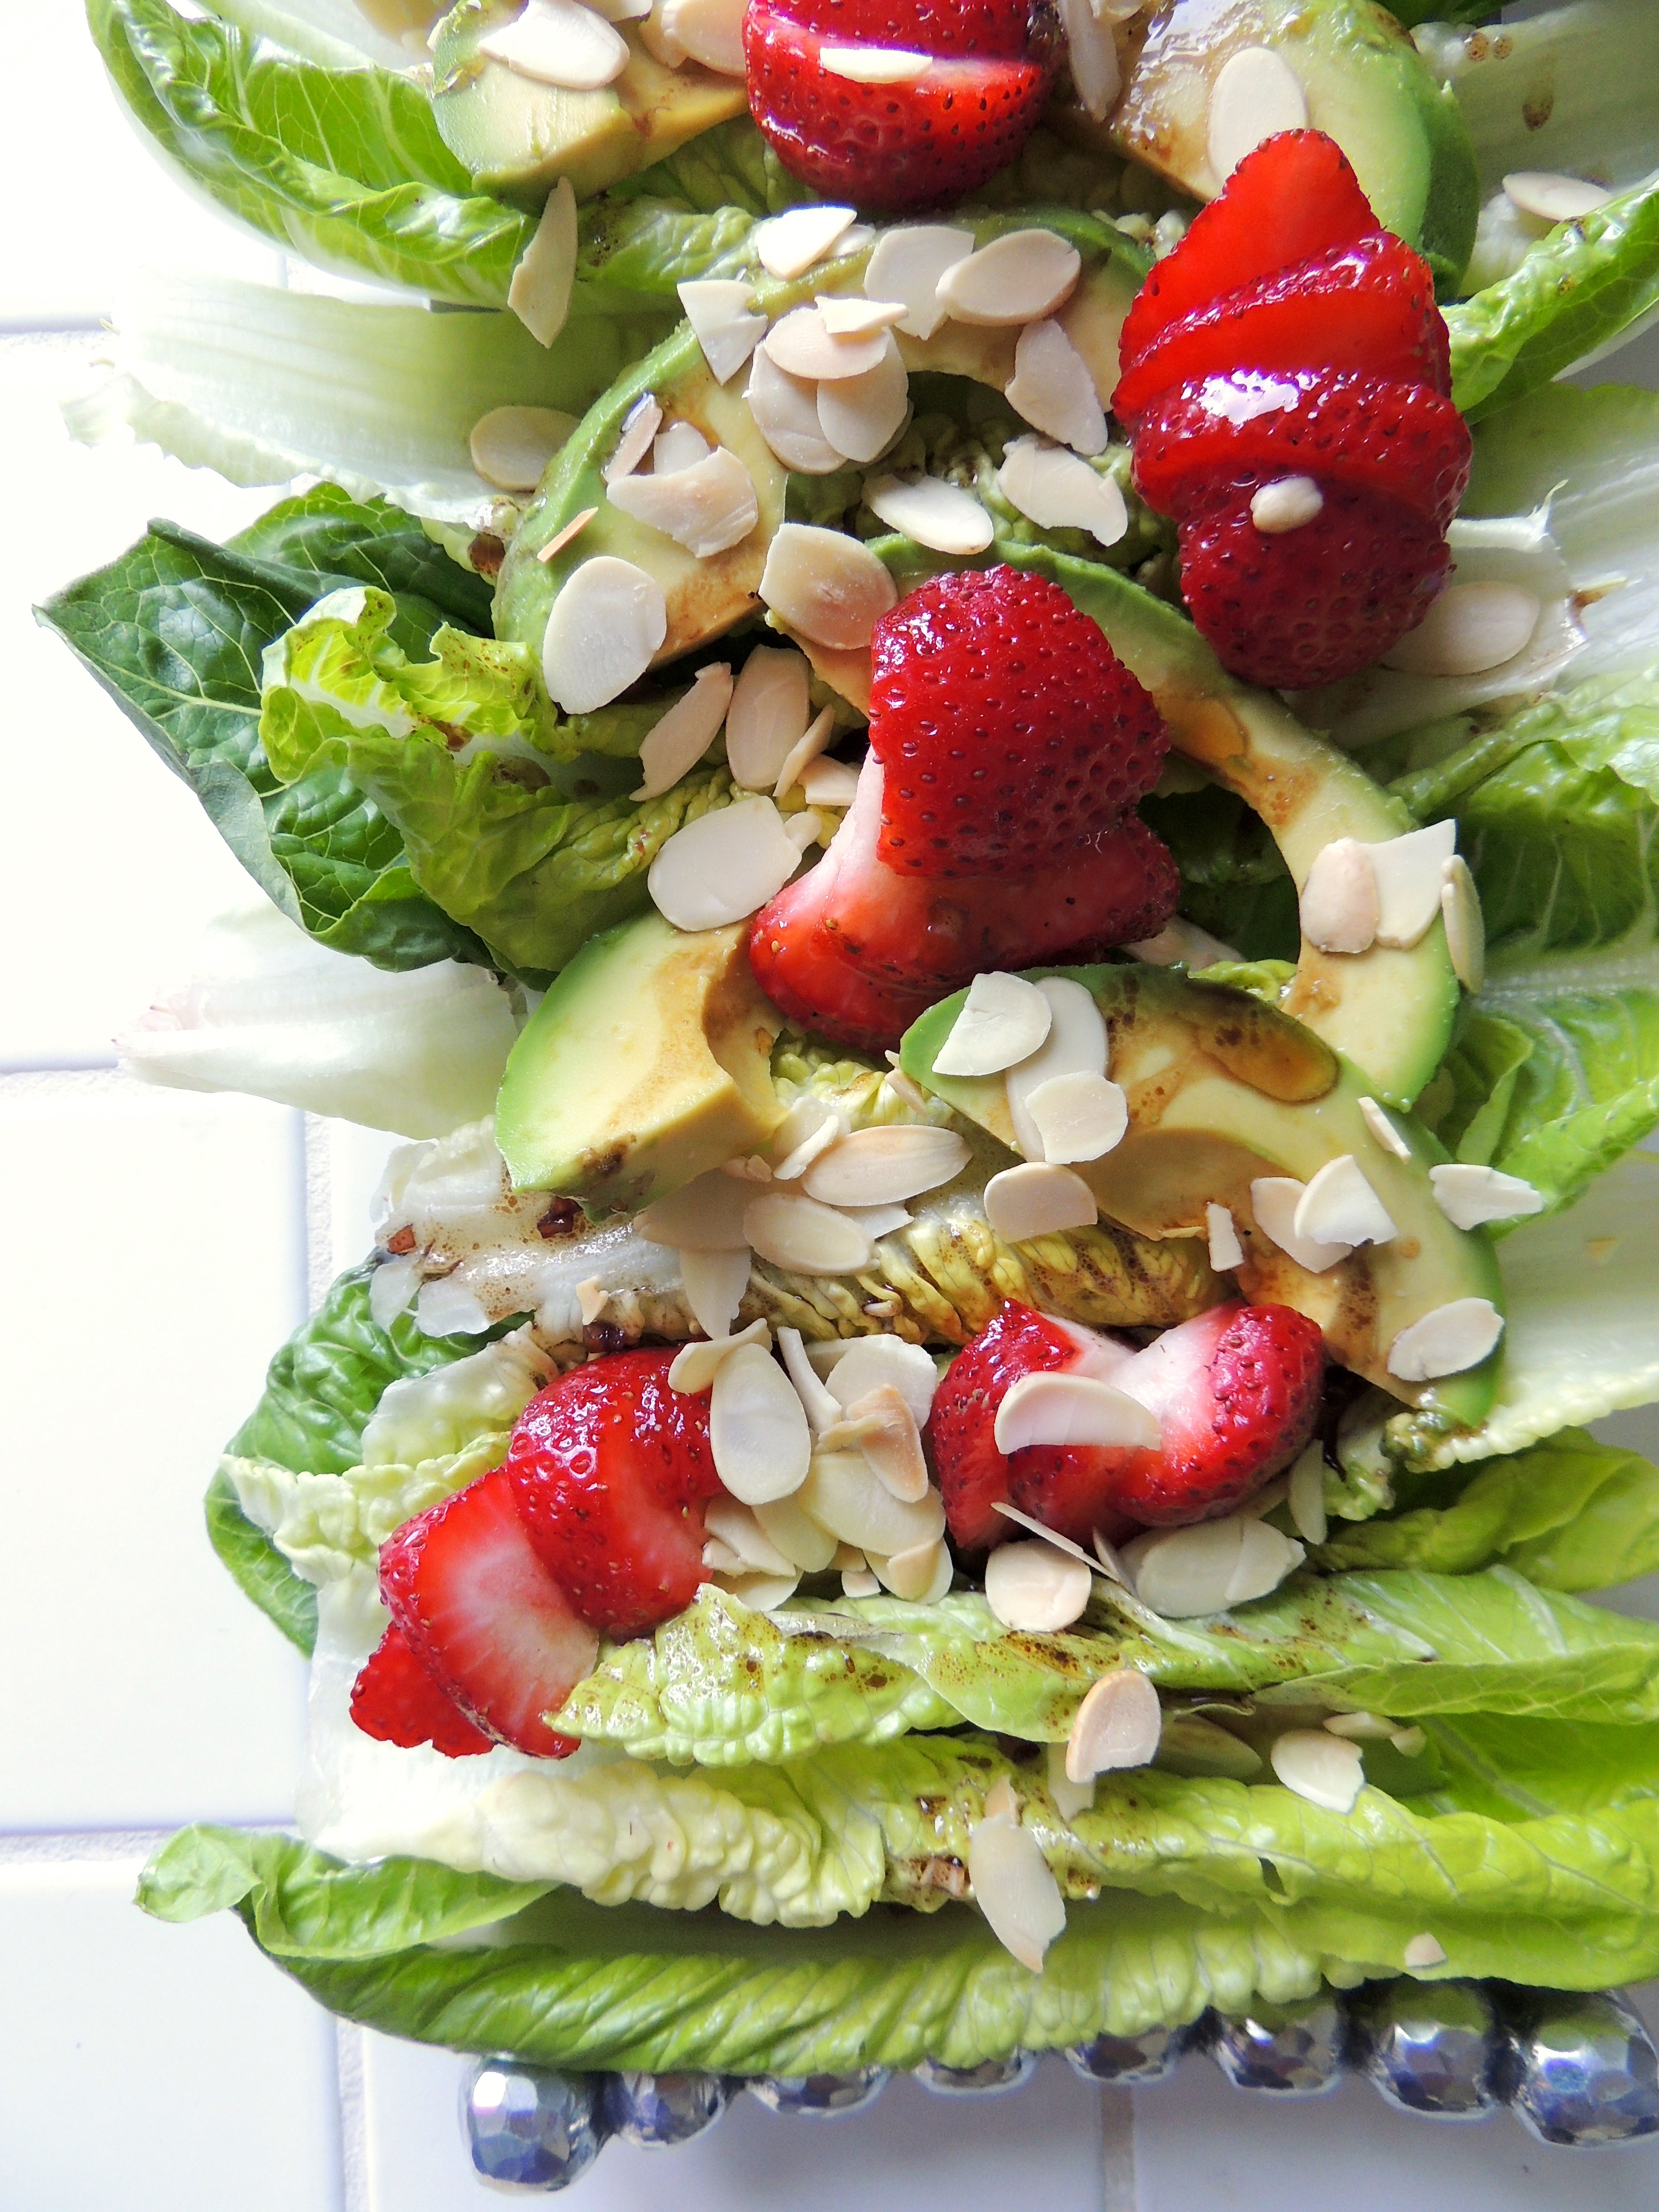 Raspberry Romaine with Avocado, Strawberries & Toasted Almonds | Living Healthy in Seattle